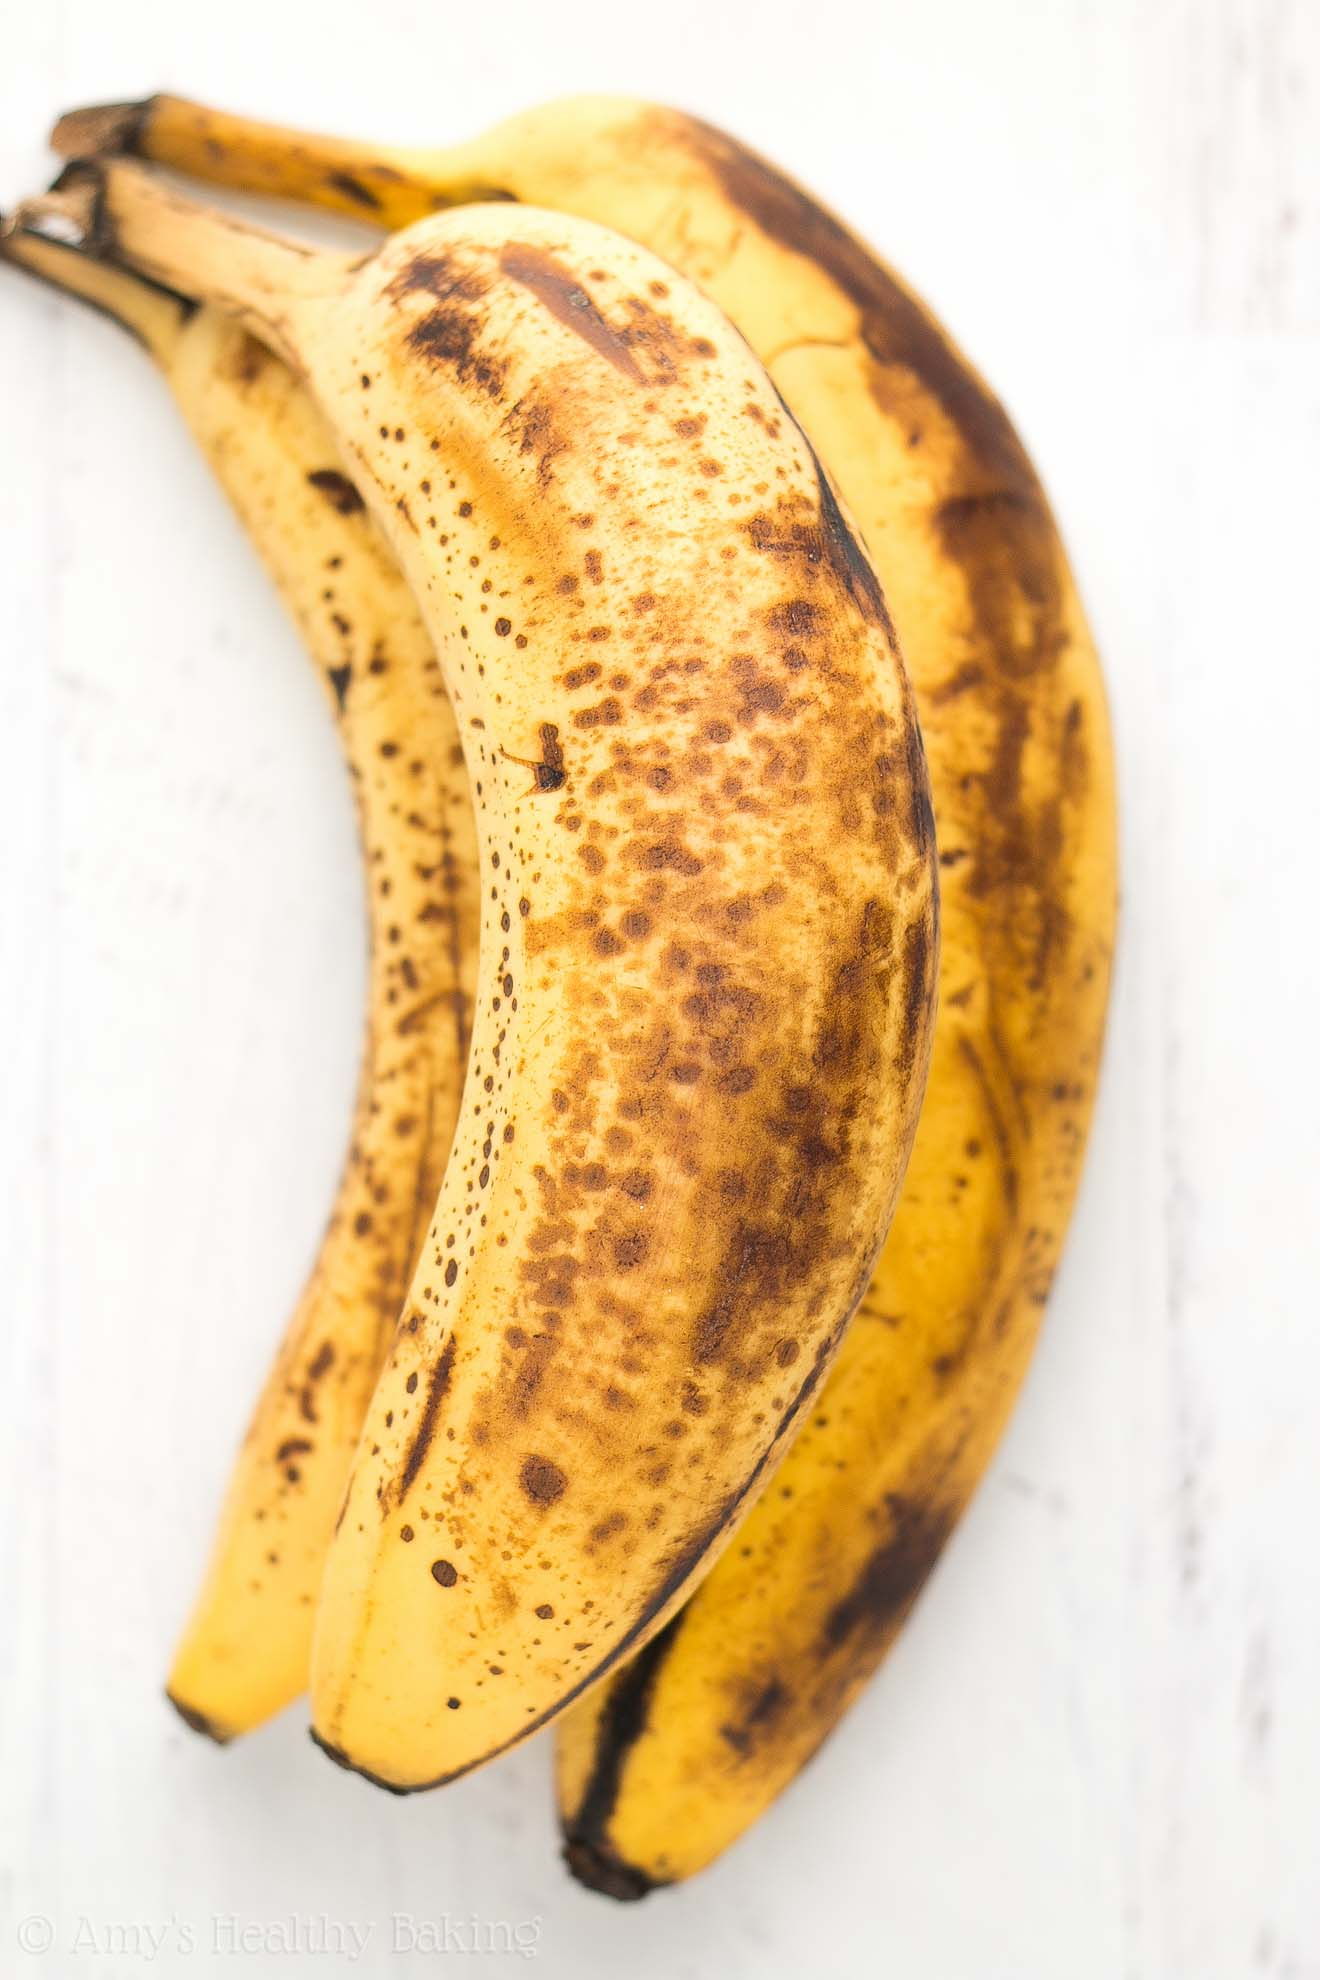 Ripe bananas with lots of brown spots that are perfect for baking